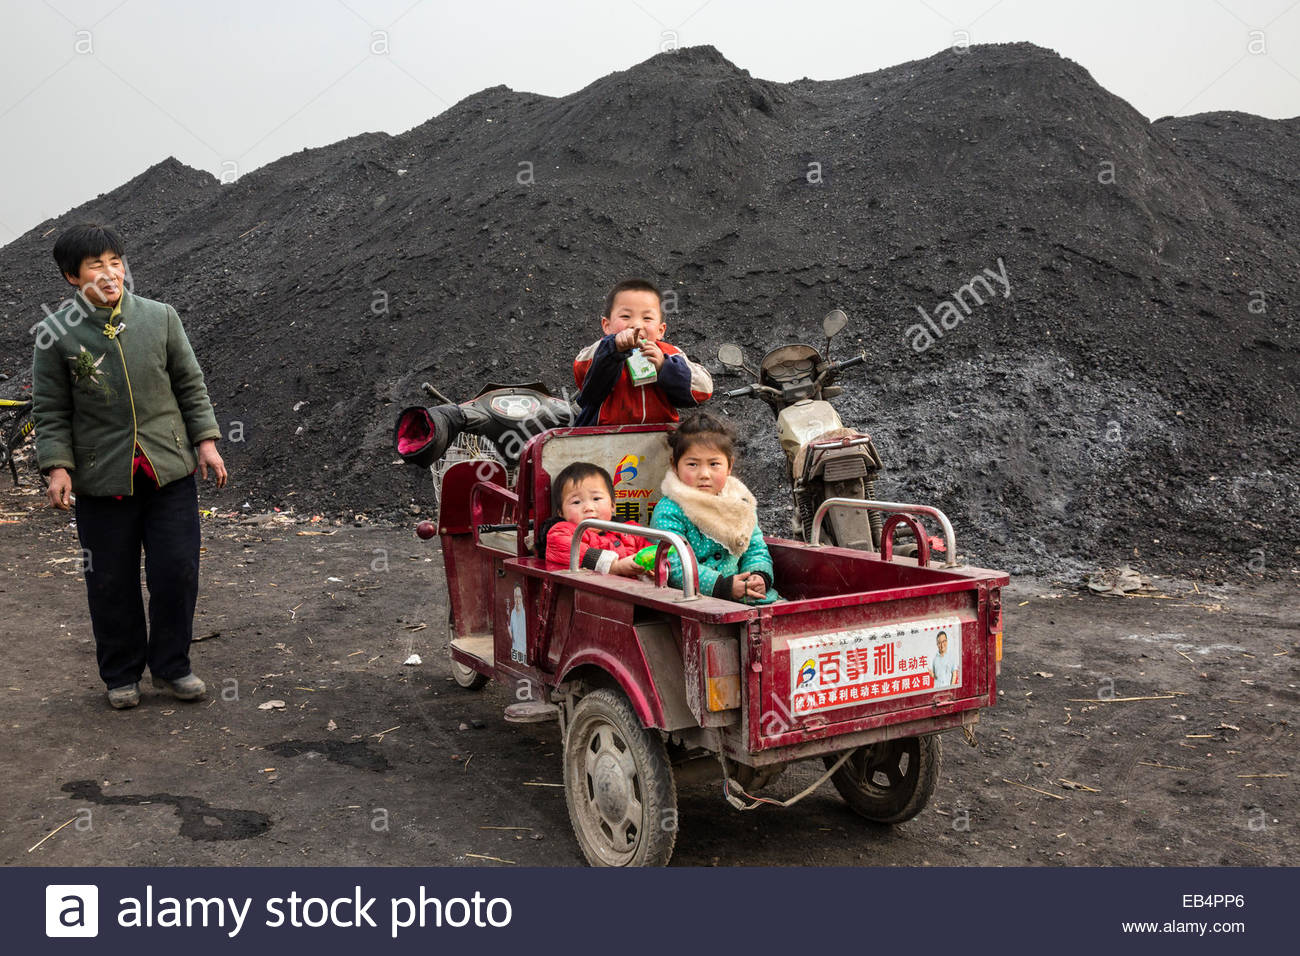 Children in a motorized vehicle wait at a coal depot for their mother. - Stock Image